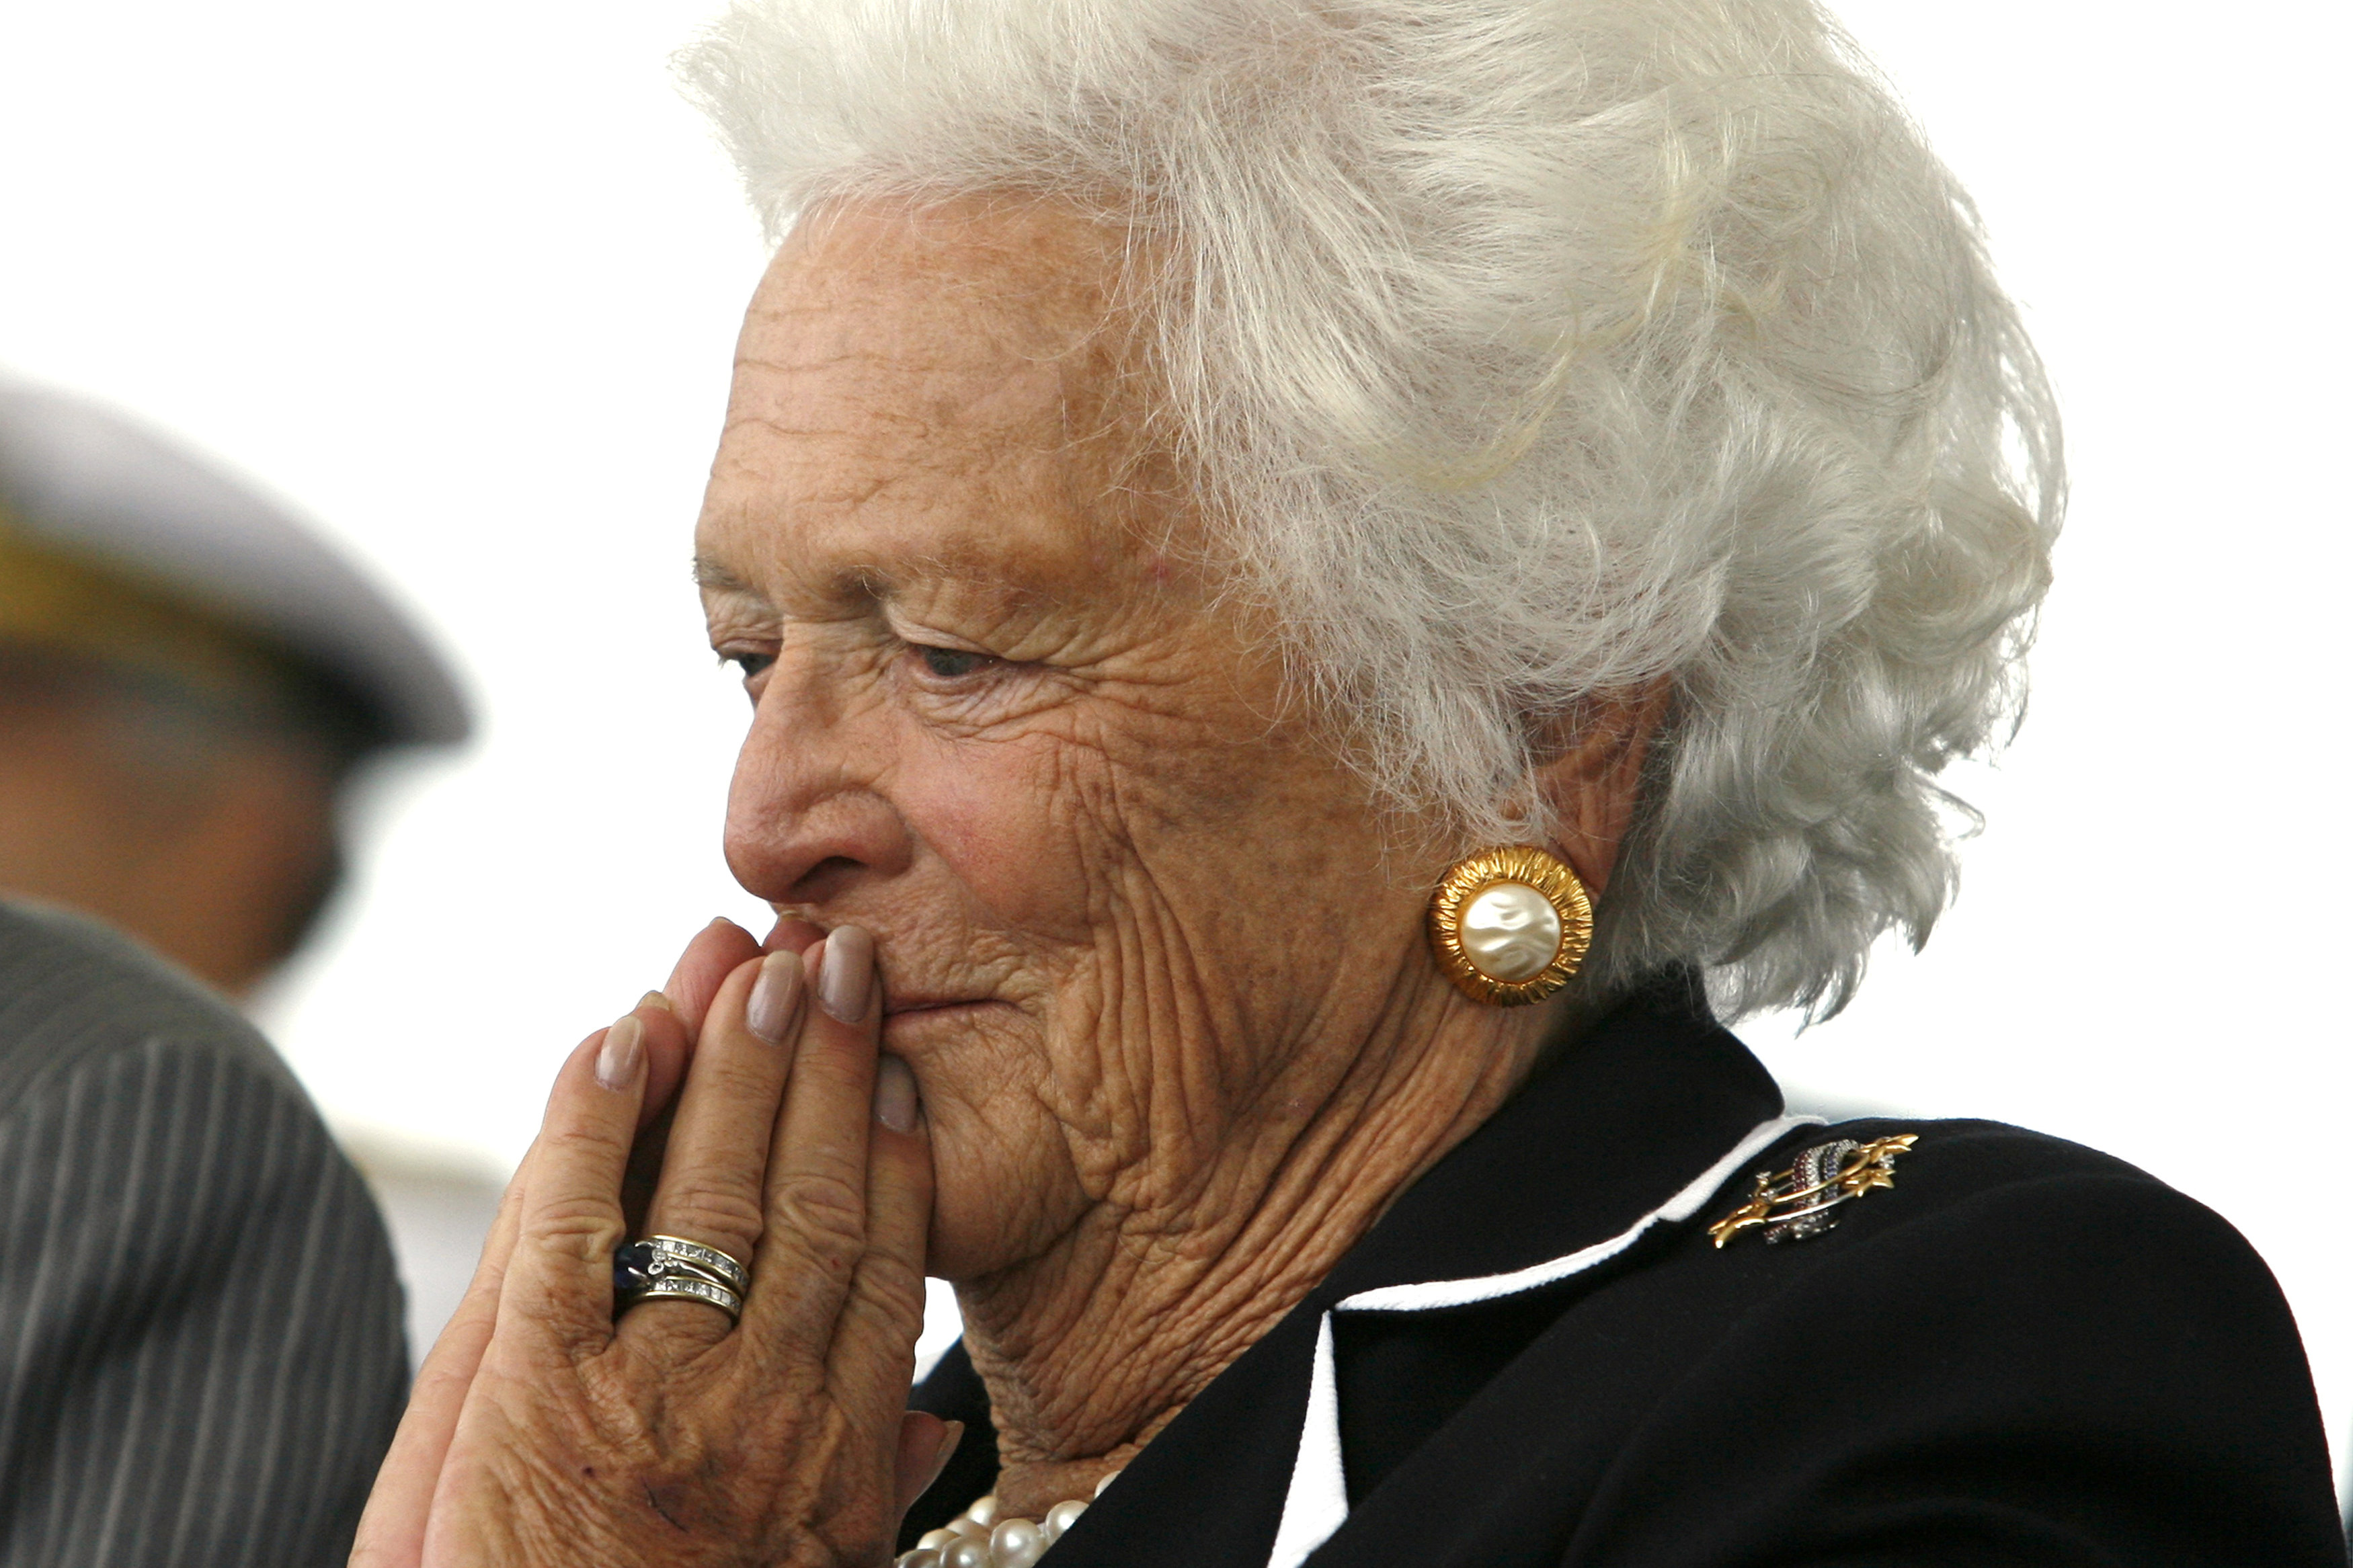 FILE PHOTO: Former first lady Barbara Bush listens to remarks during the christening ceremony of the USS George H.W. Bush at Northrop-Grumman's shipyard in Newport News, Virginia, U.S., October 7, 2006. REUTERS/Kevin Lamarque/File Photo